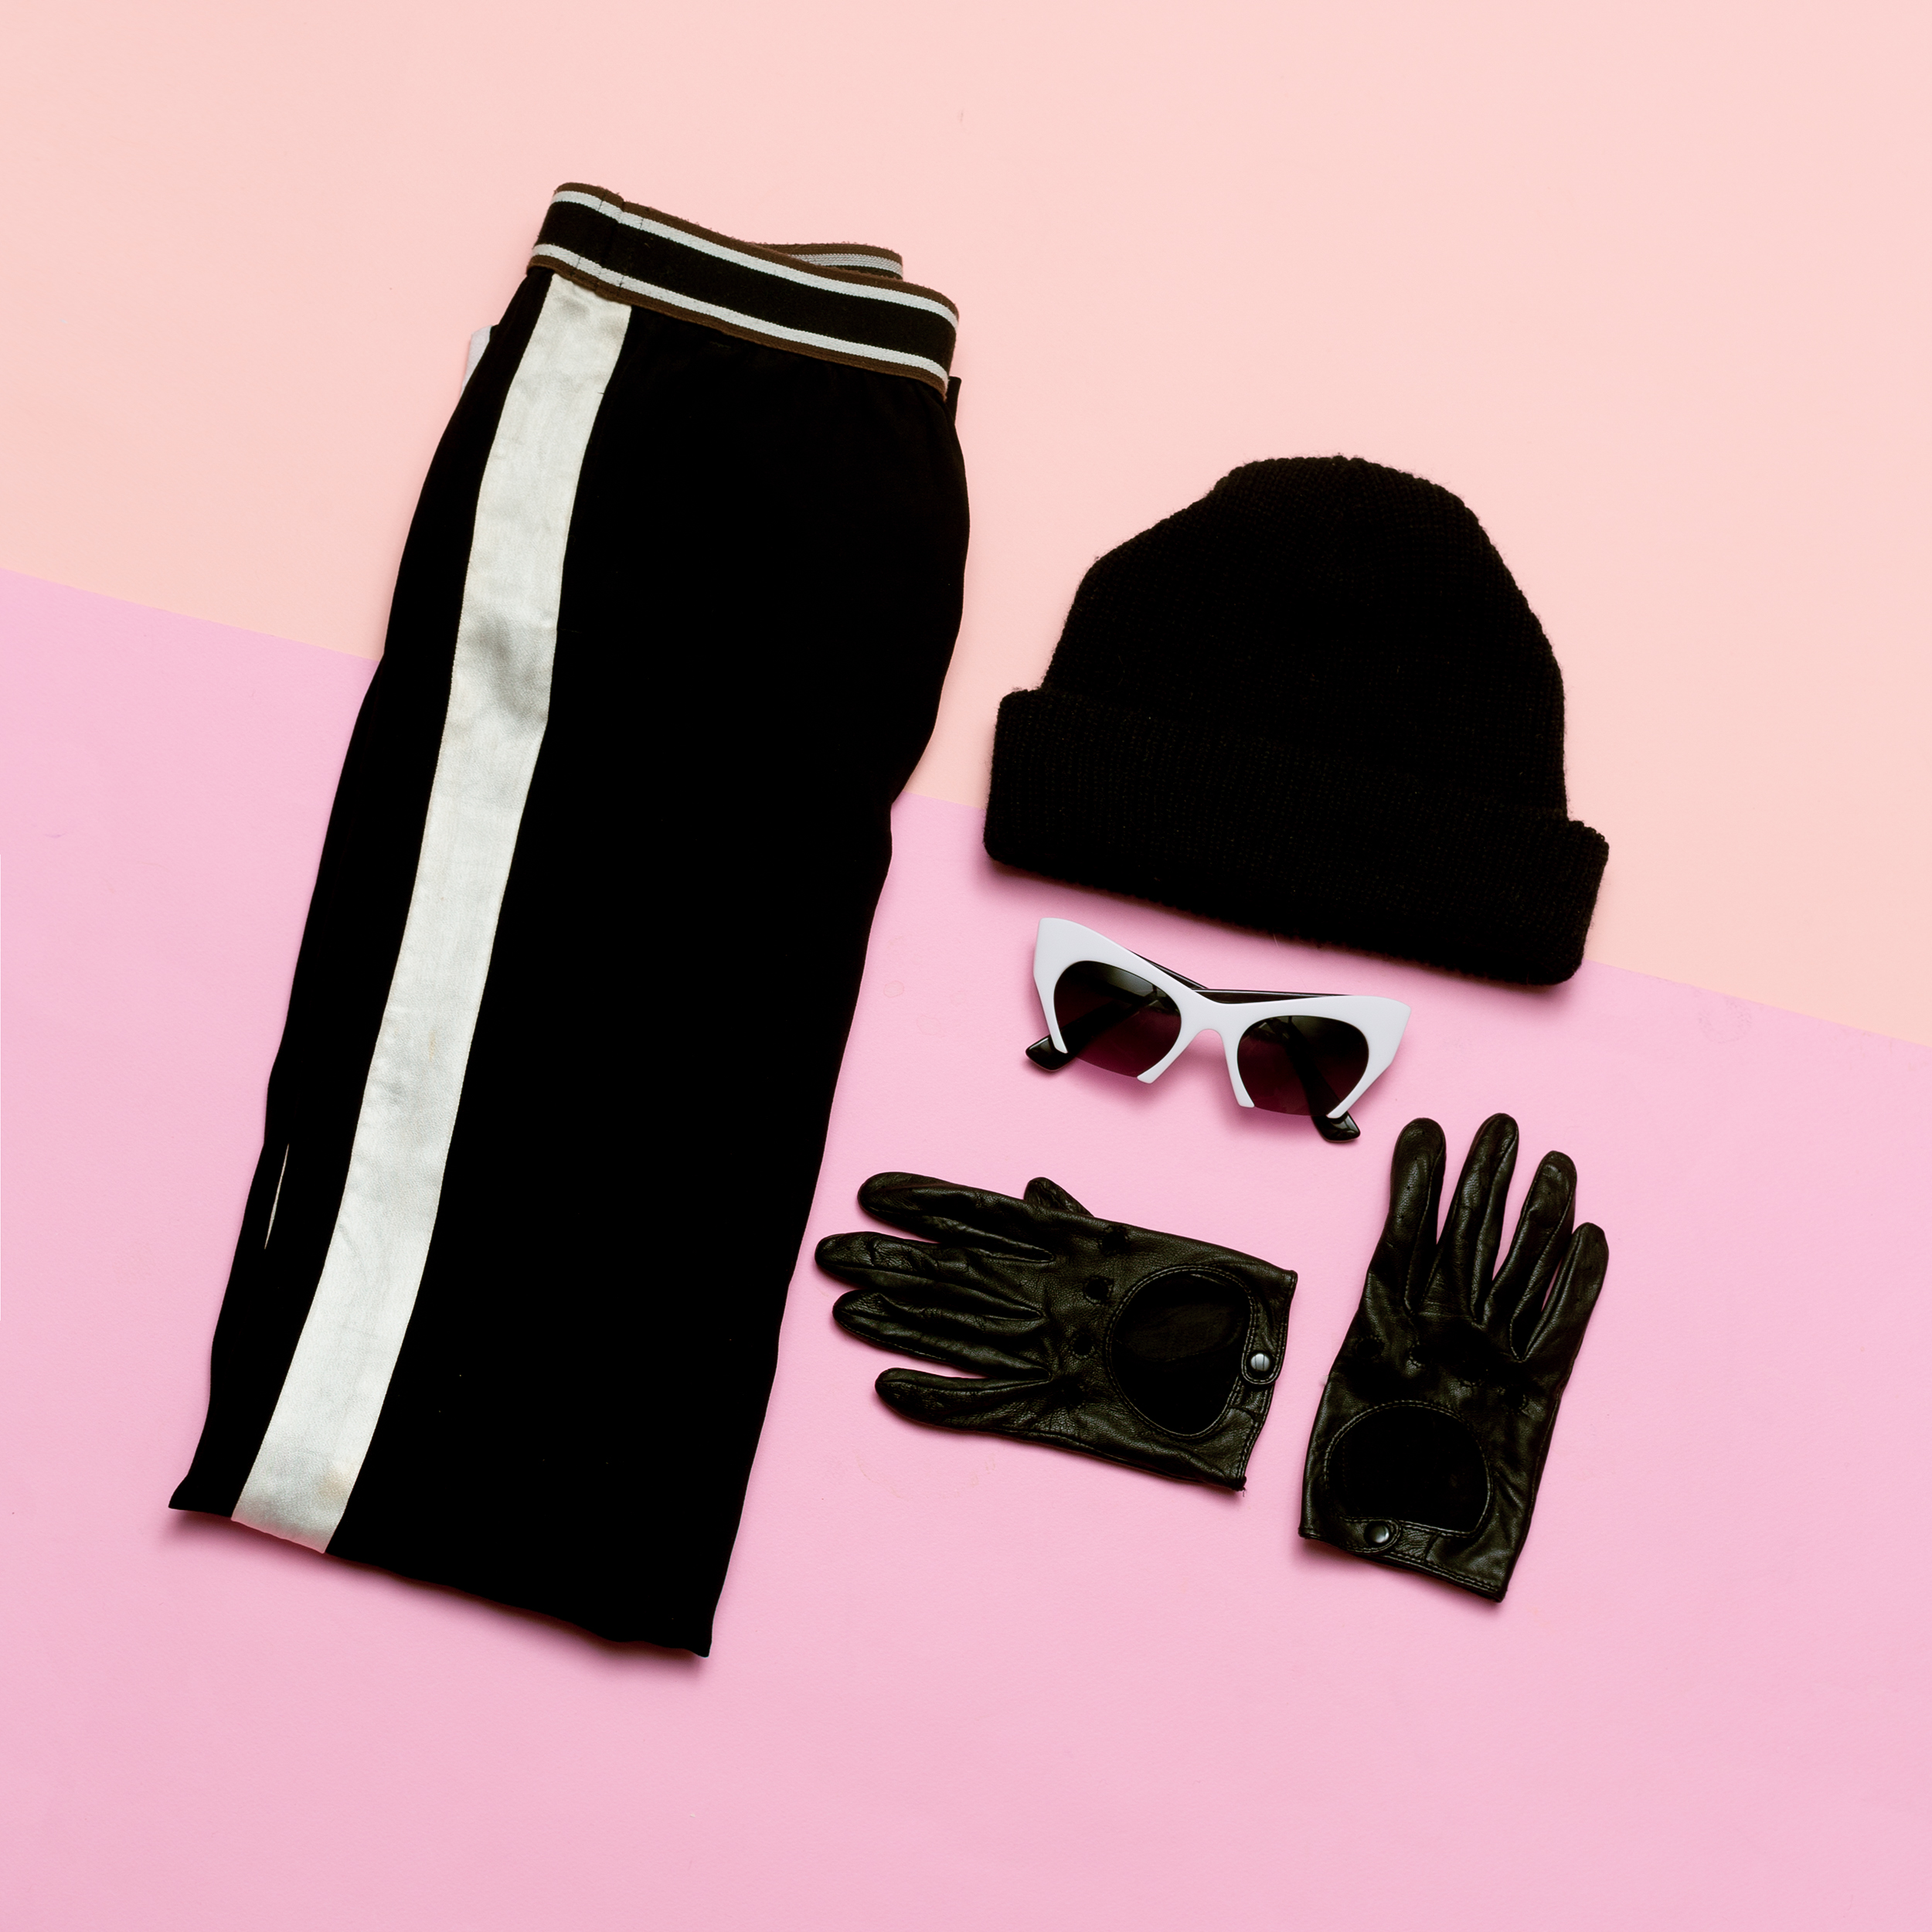 black gloves, black snow hat, black track pants, and black/white sunglasses laying in a neat, folded arrangement